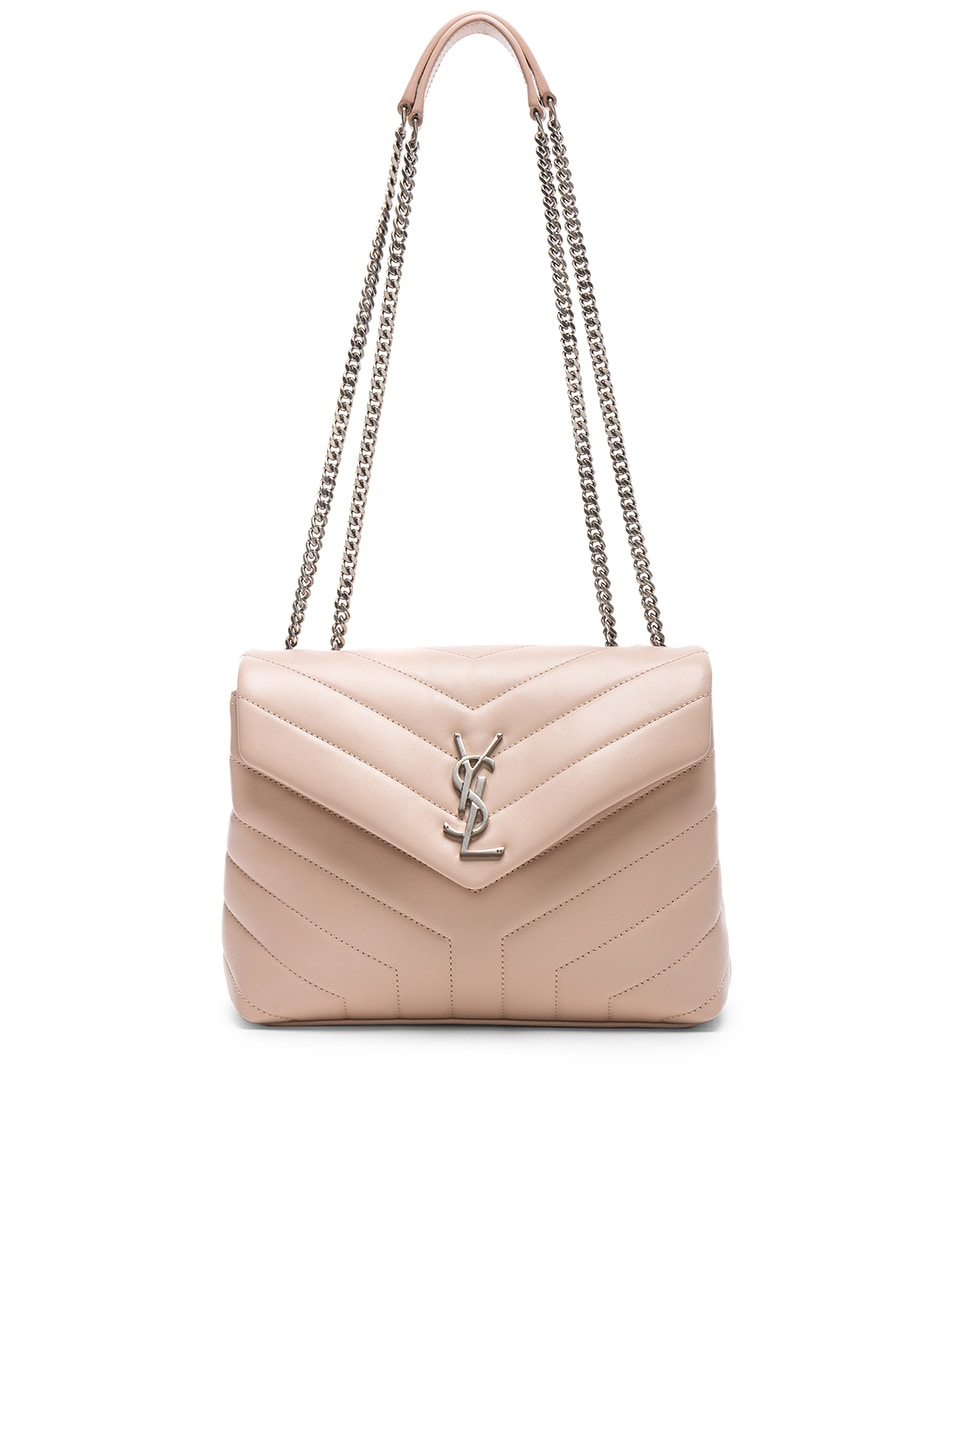 6c7a978e5e8 Image 1 of Saint Laurent Small Supple Monogramme Loulou Chain Bag in Marble  Pink